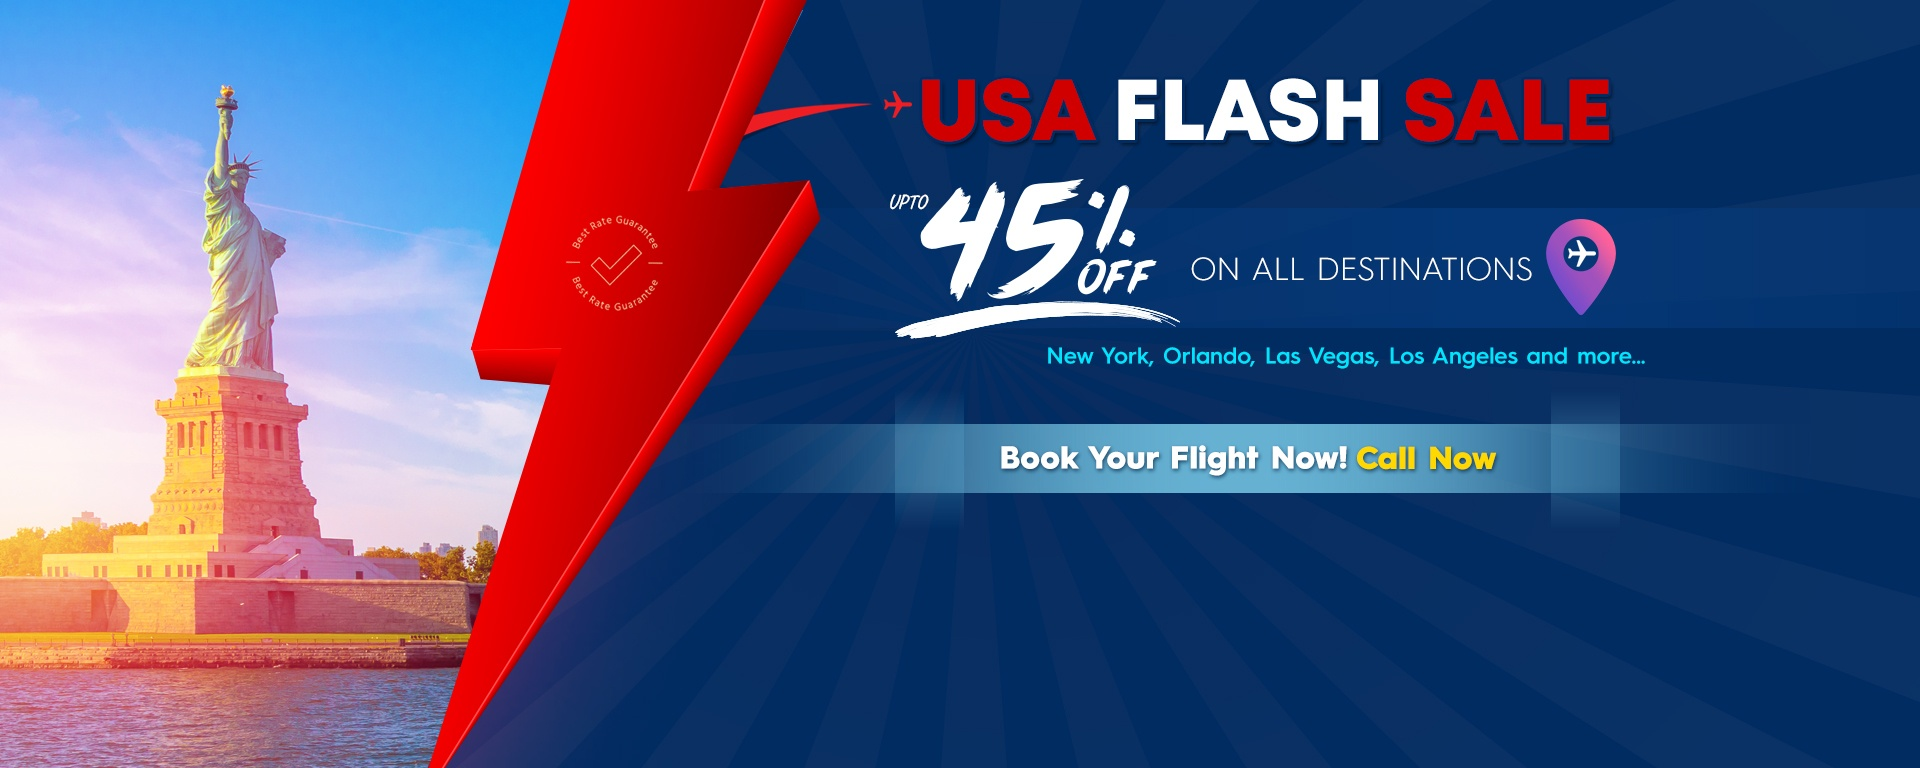 USA Flash Sale